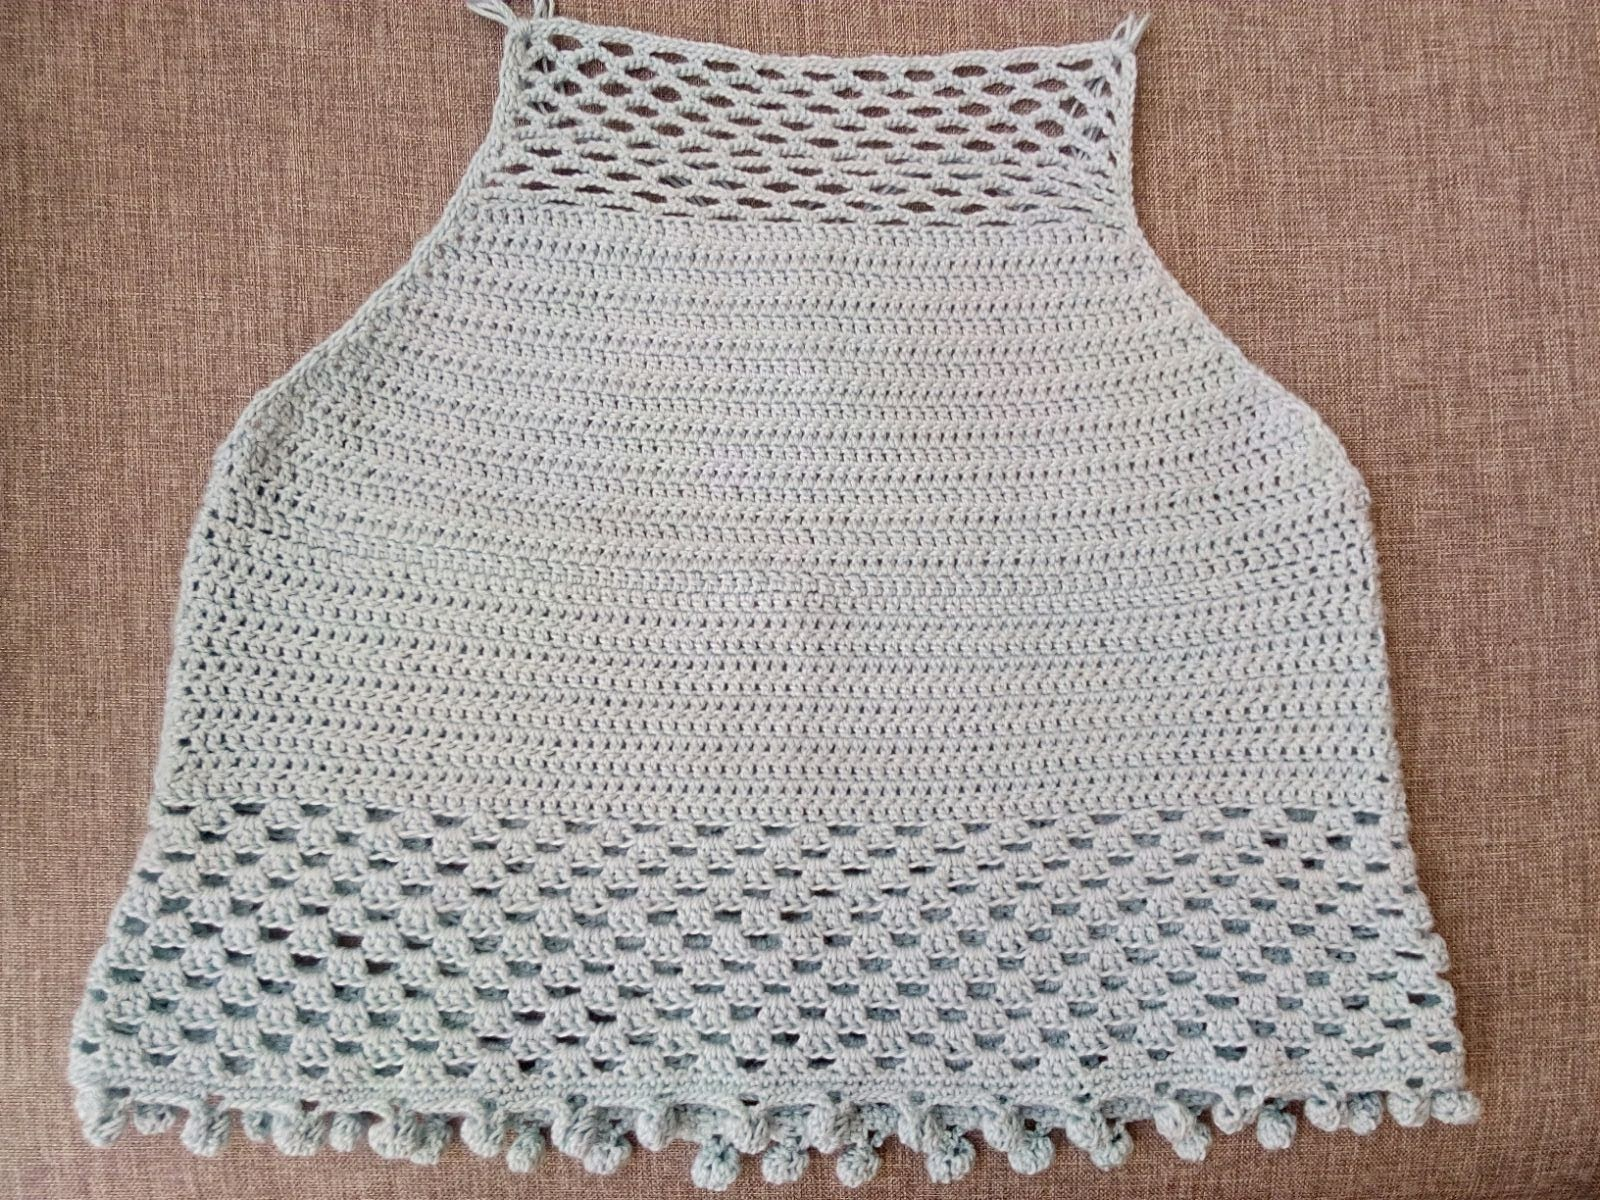 kuchichadas: Top medio largo crochet patrón